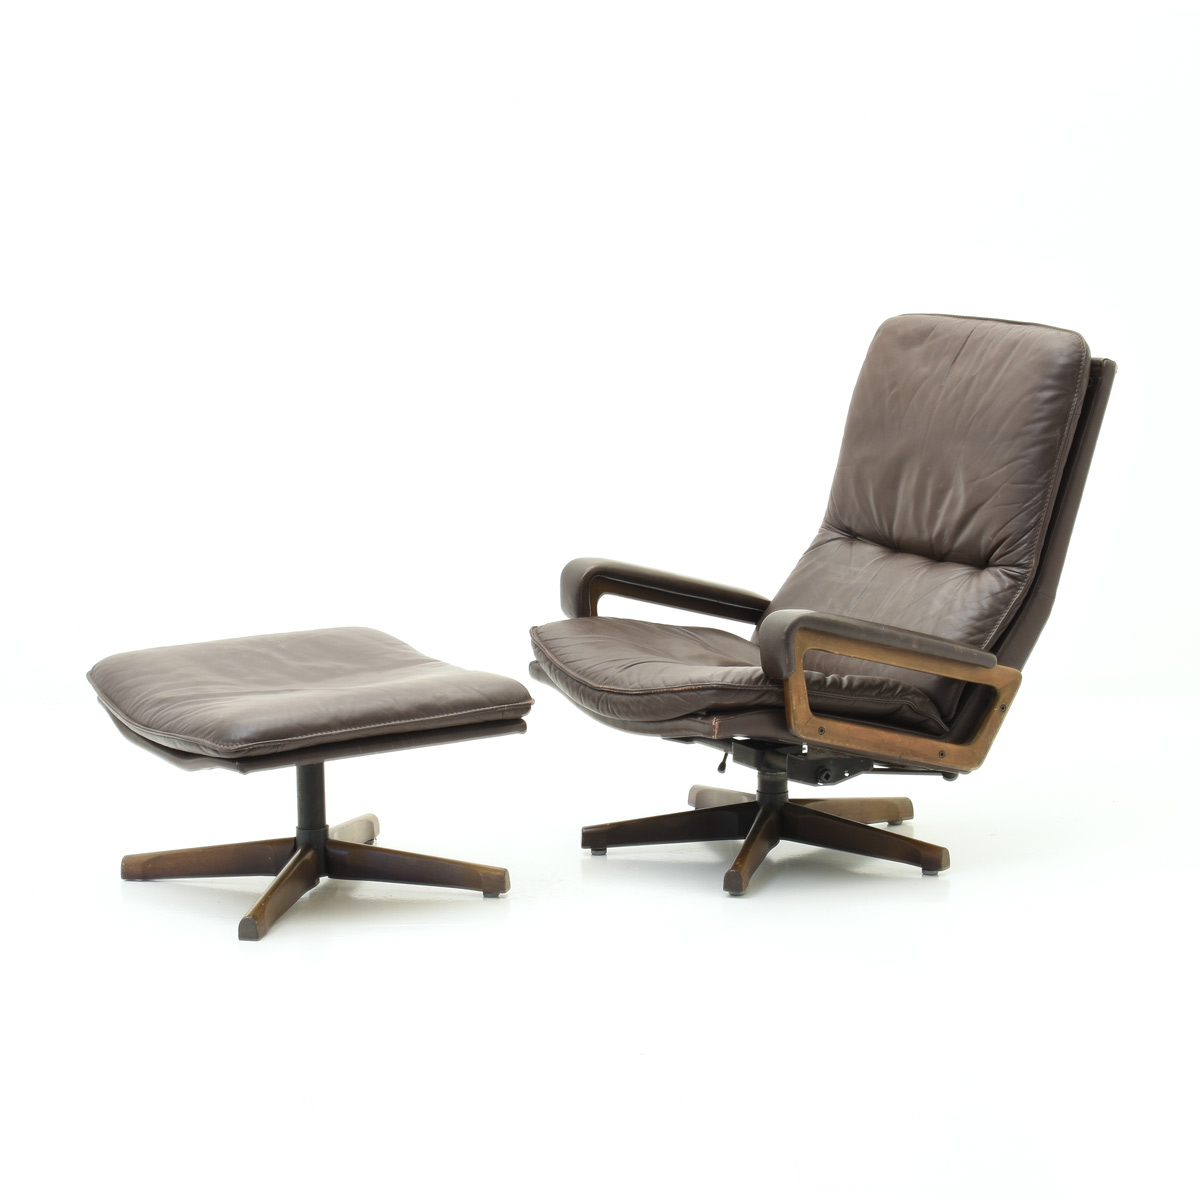 Strässle, King Chair, Sessel